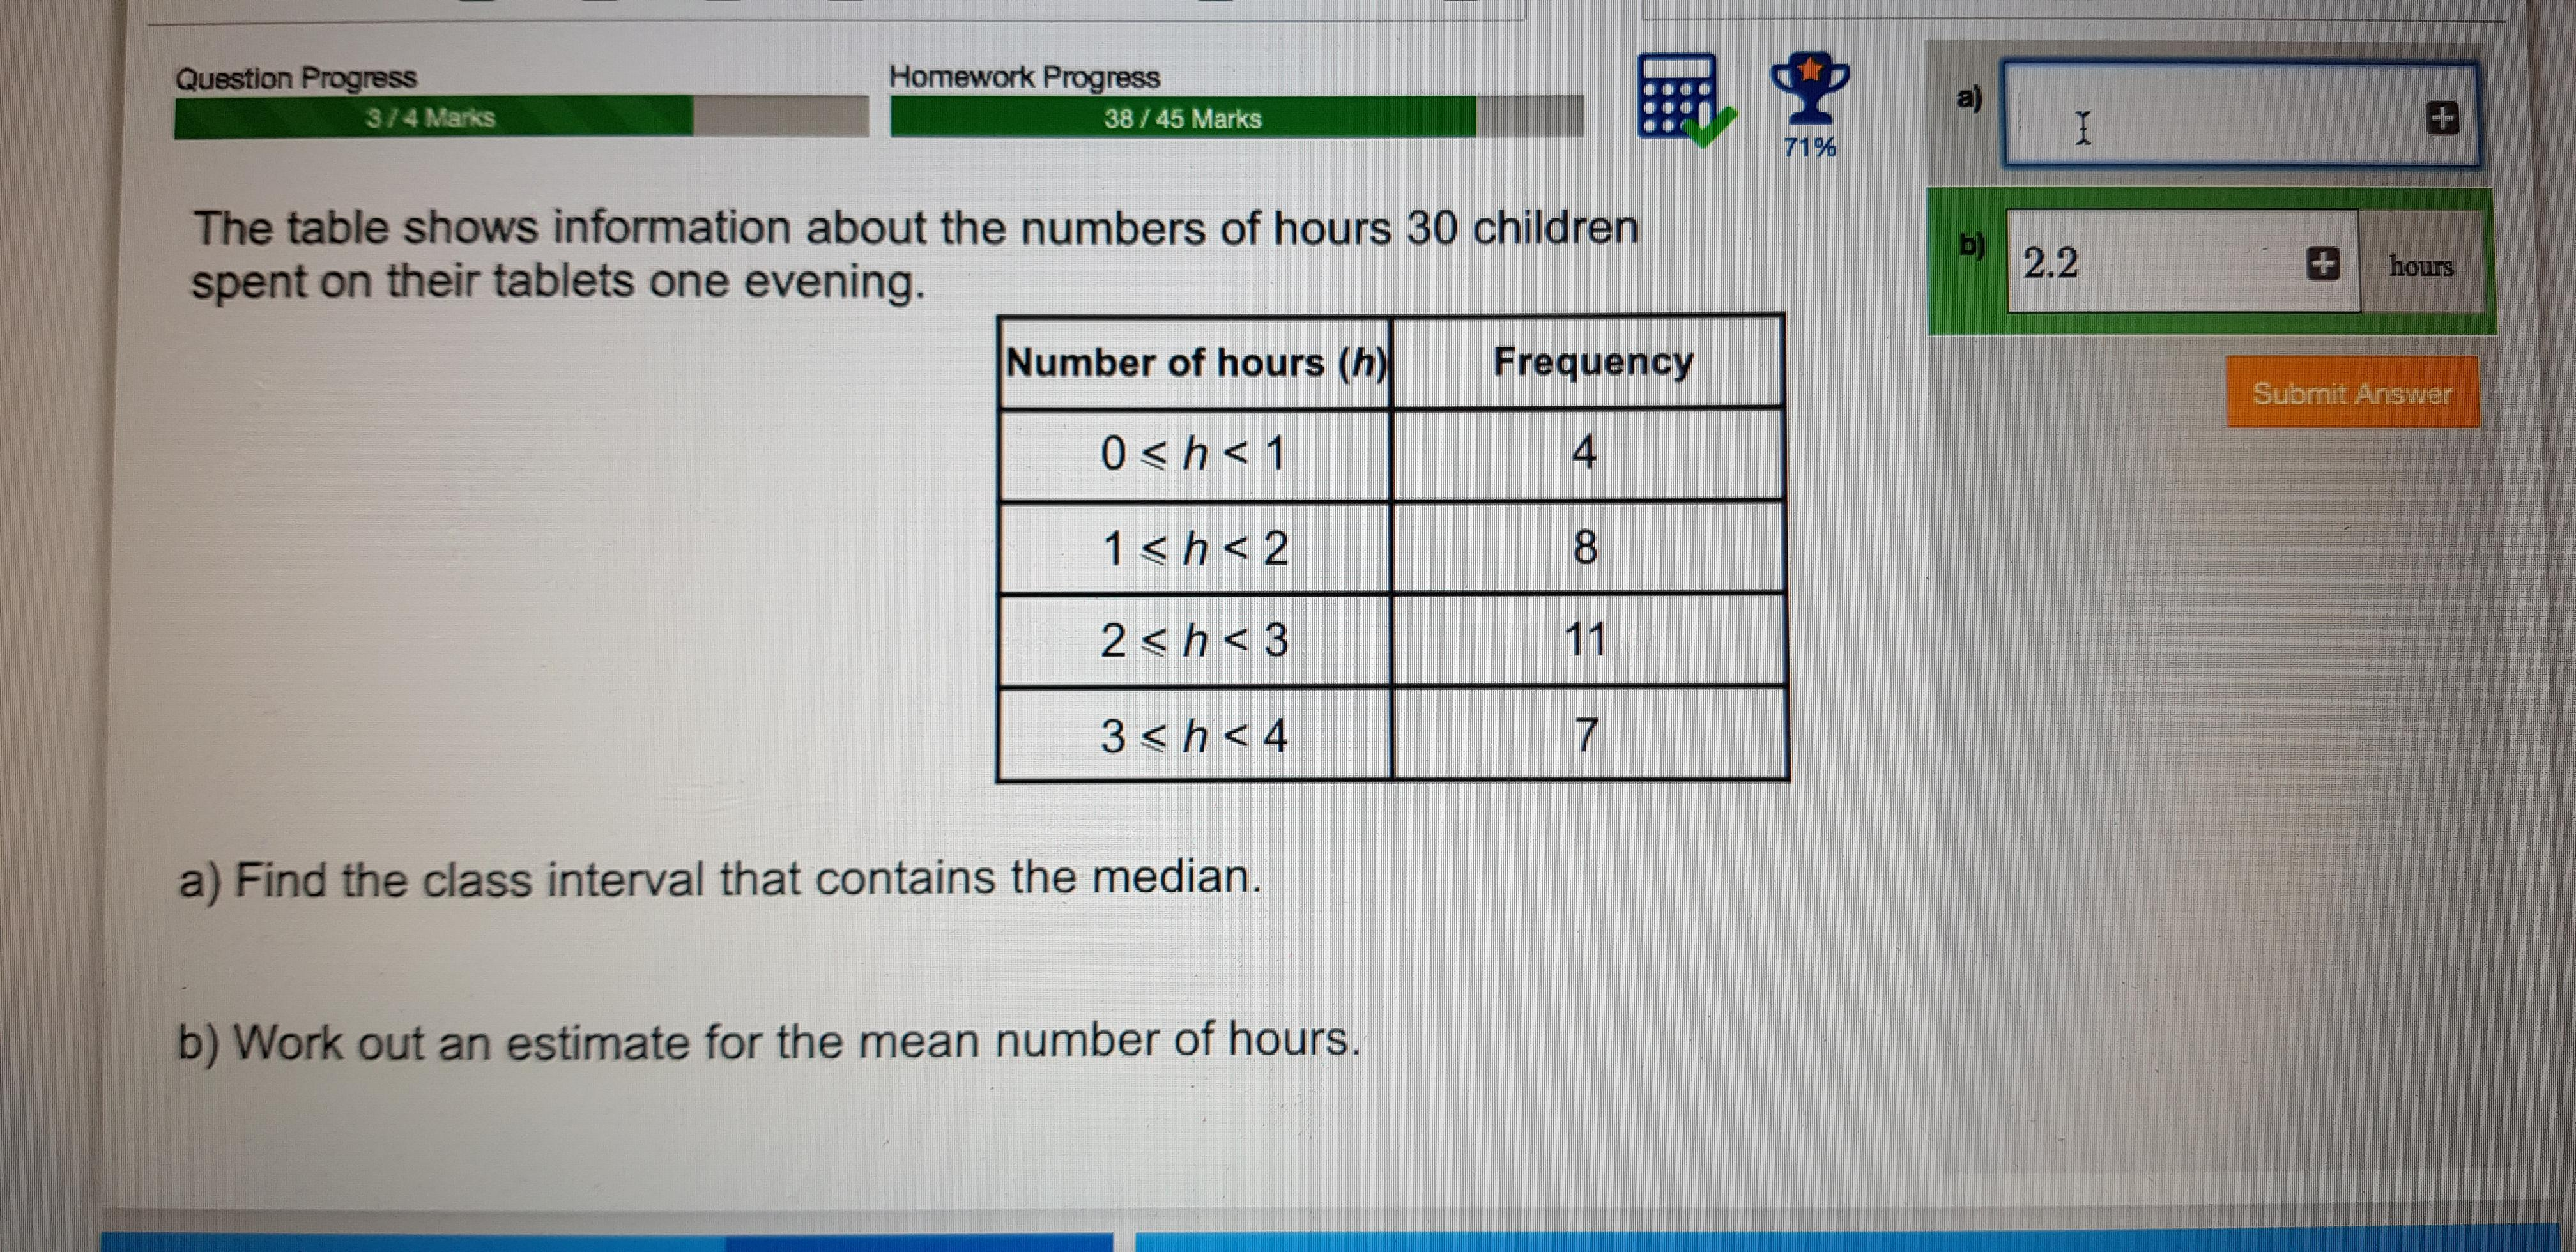 what is the class interval